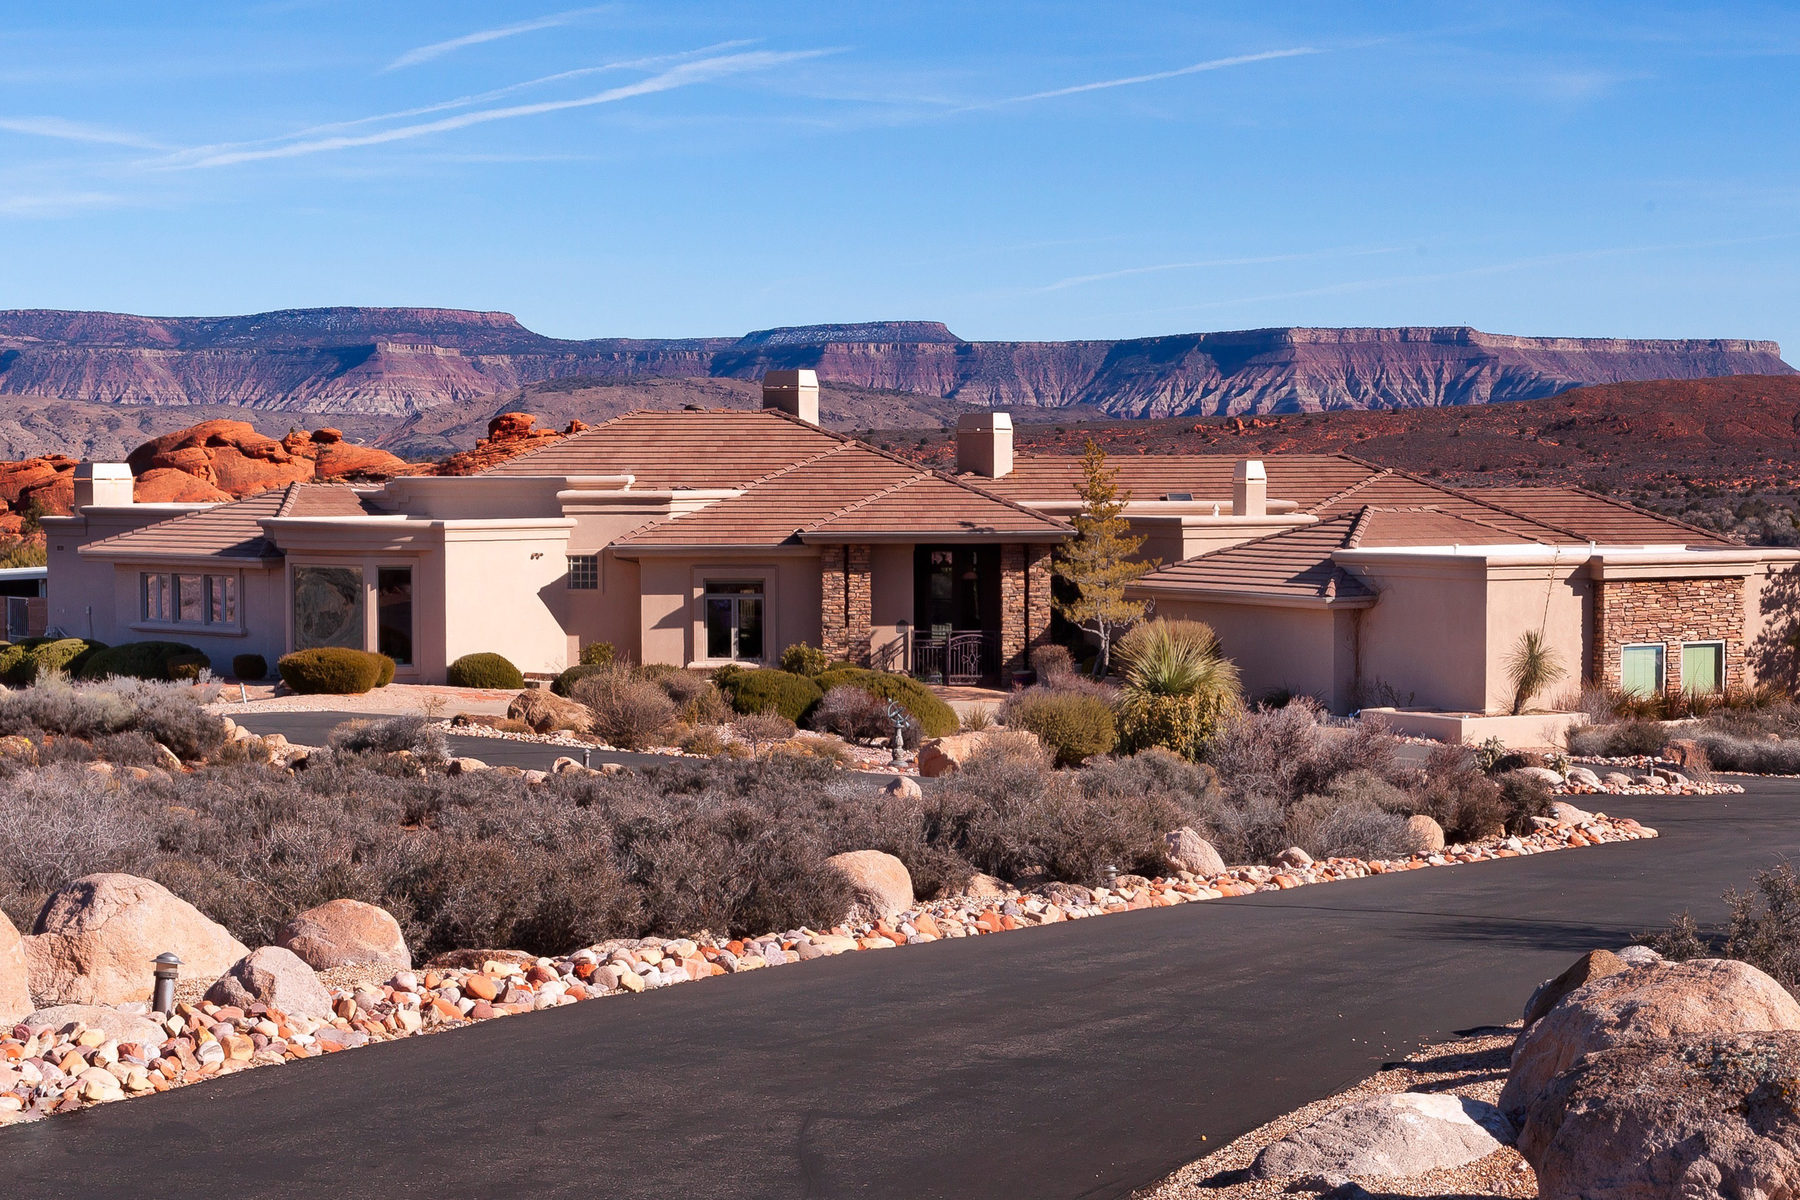 Single Family Home for Sale at Open Vistas and Tranquility 988 N Bonanza Rd Leeds, Utah 84746 United States